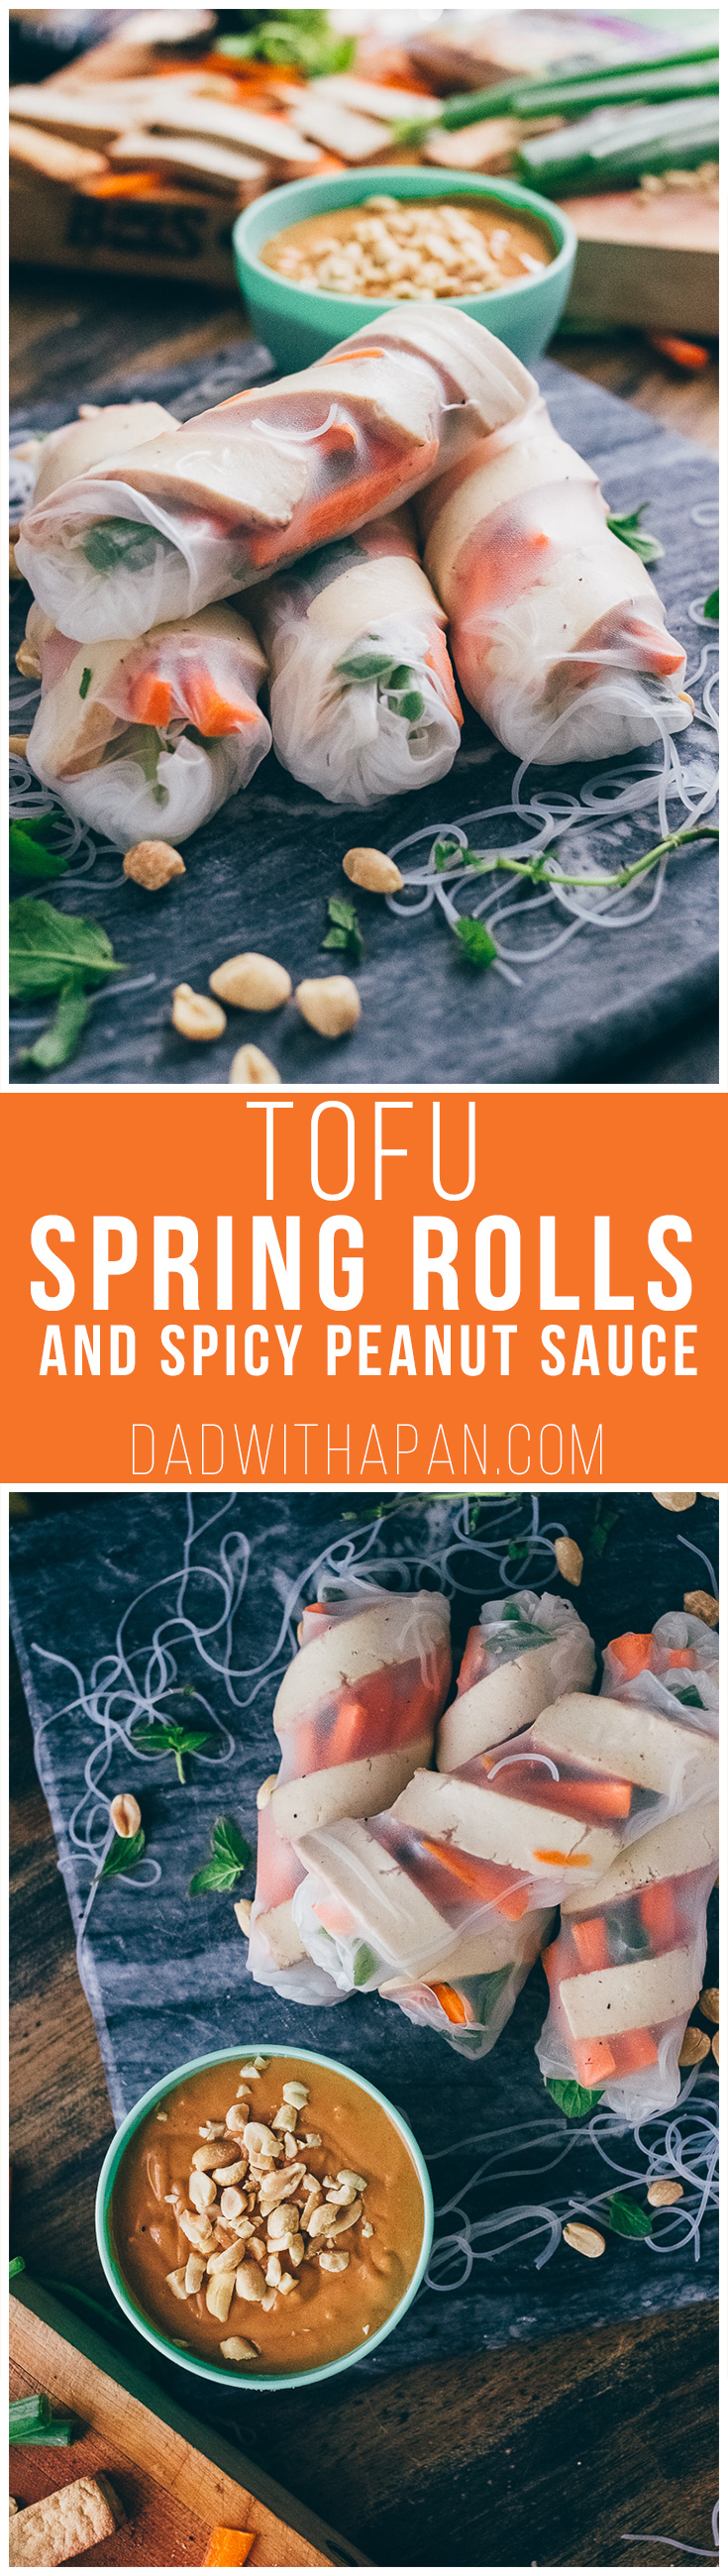 Sesame Ginger Tofu Spring Rolls With Spicy Peanut Sauce